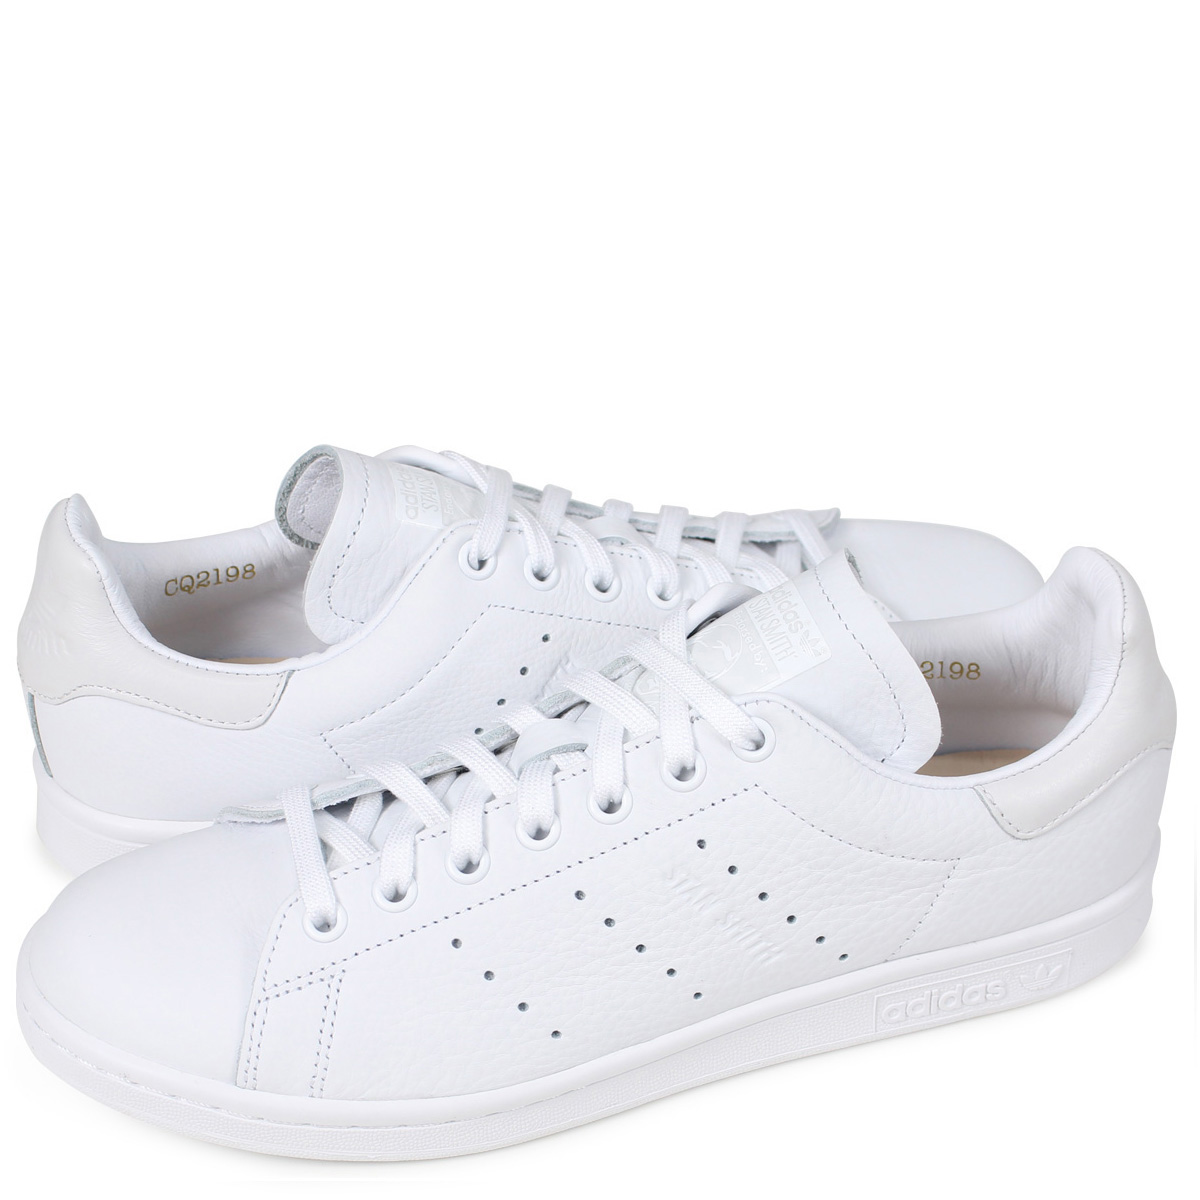 2a7d04d40e2 adidas Originals STAN SMITH Adidas Stan Smith sneakers men gap Dis CQ2198 white  originals [4 ...